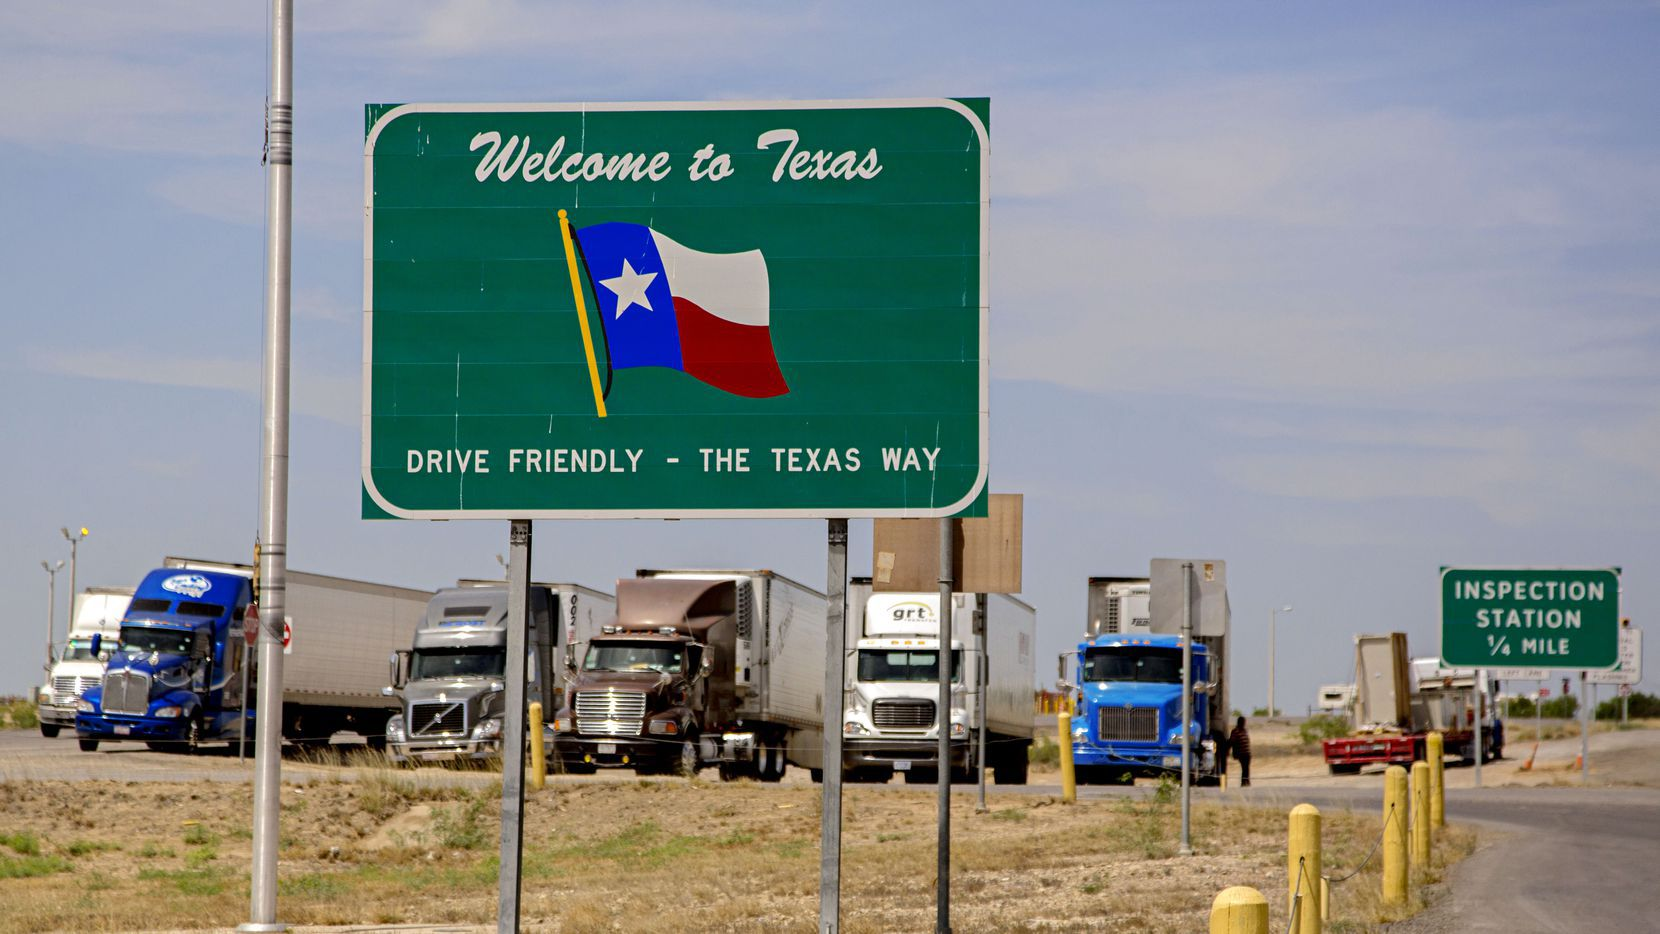 Texas had the most 2019 corporate moves by Allied Van Lines.